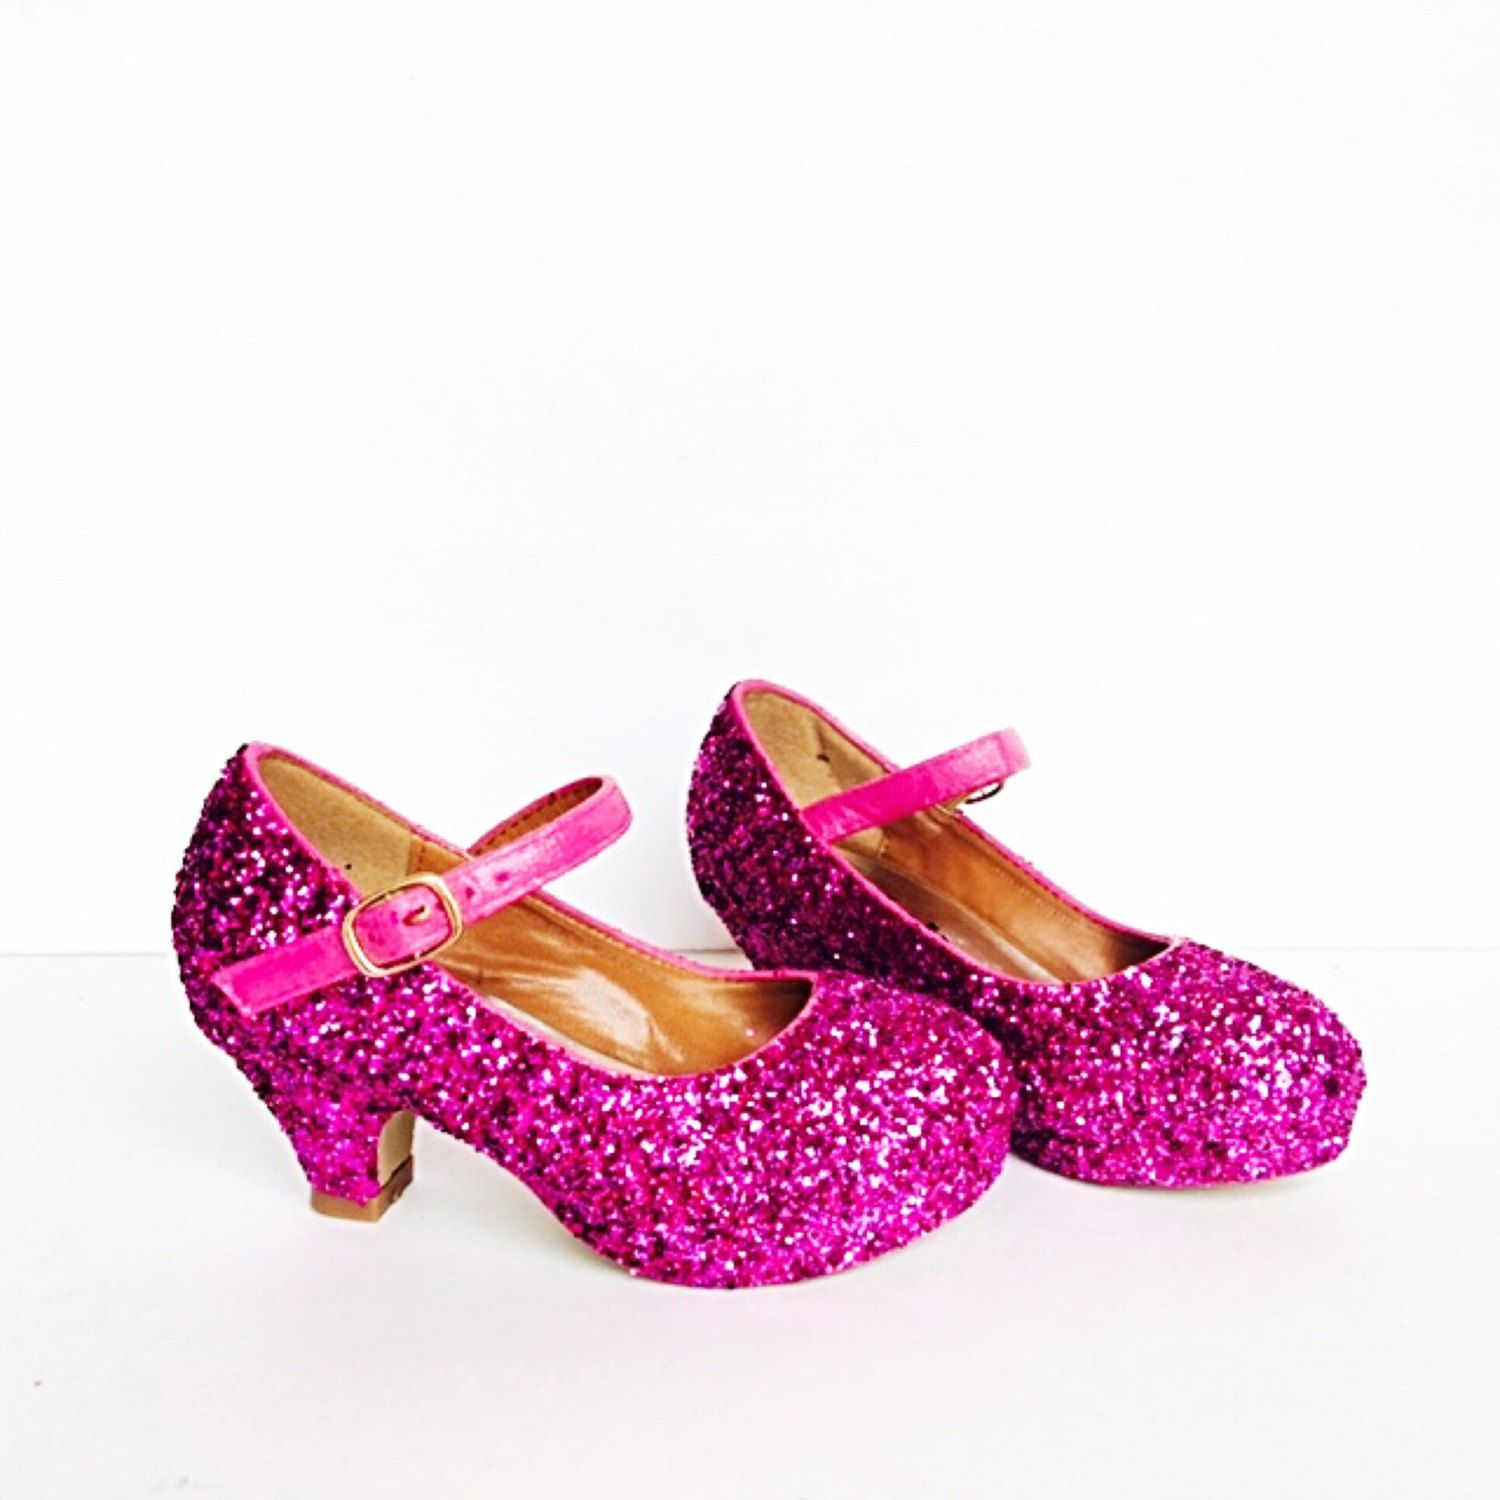 Toddler Glitter Shoes - Pink Toddler Girls Heel - Magenta Hot Fushia Pink  Heel - Glitzy Baby Flower Girl Shoes - pinned by pin4etsy.com 5c84ed035fde